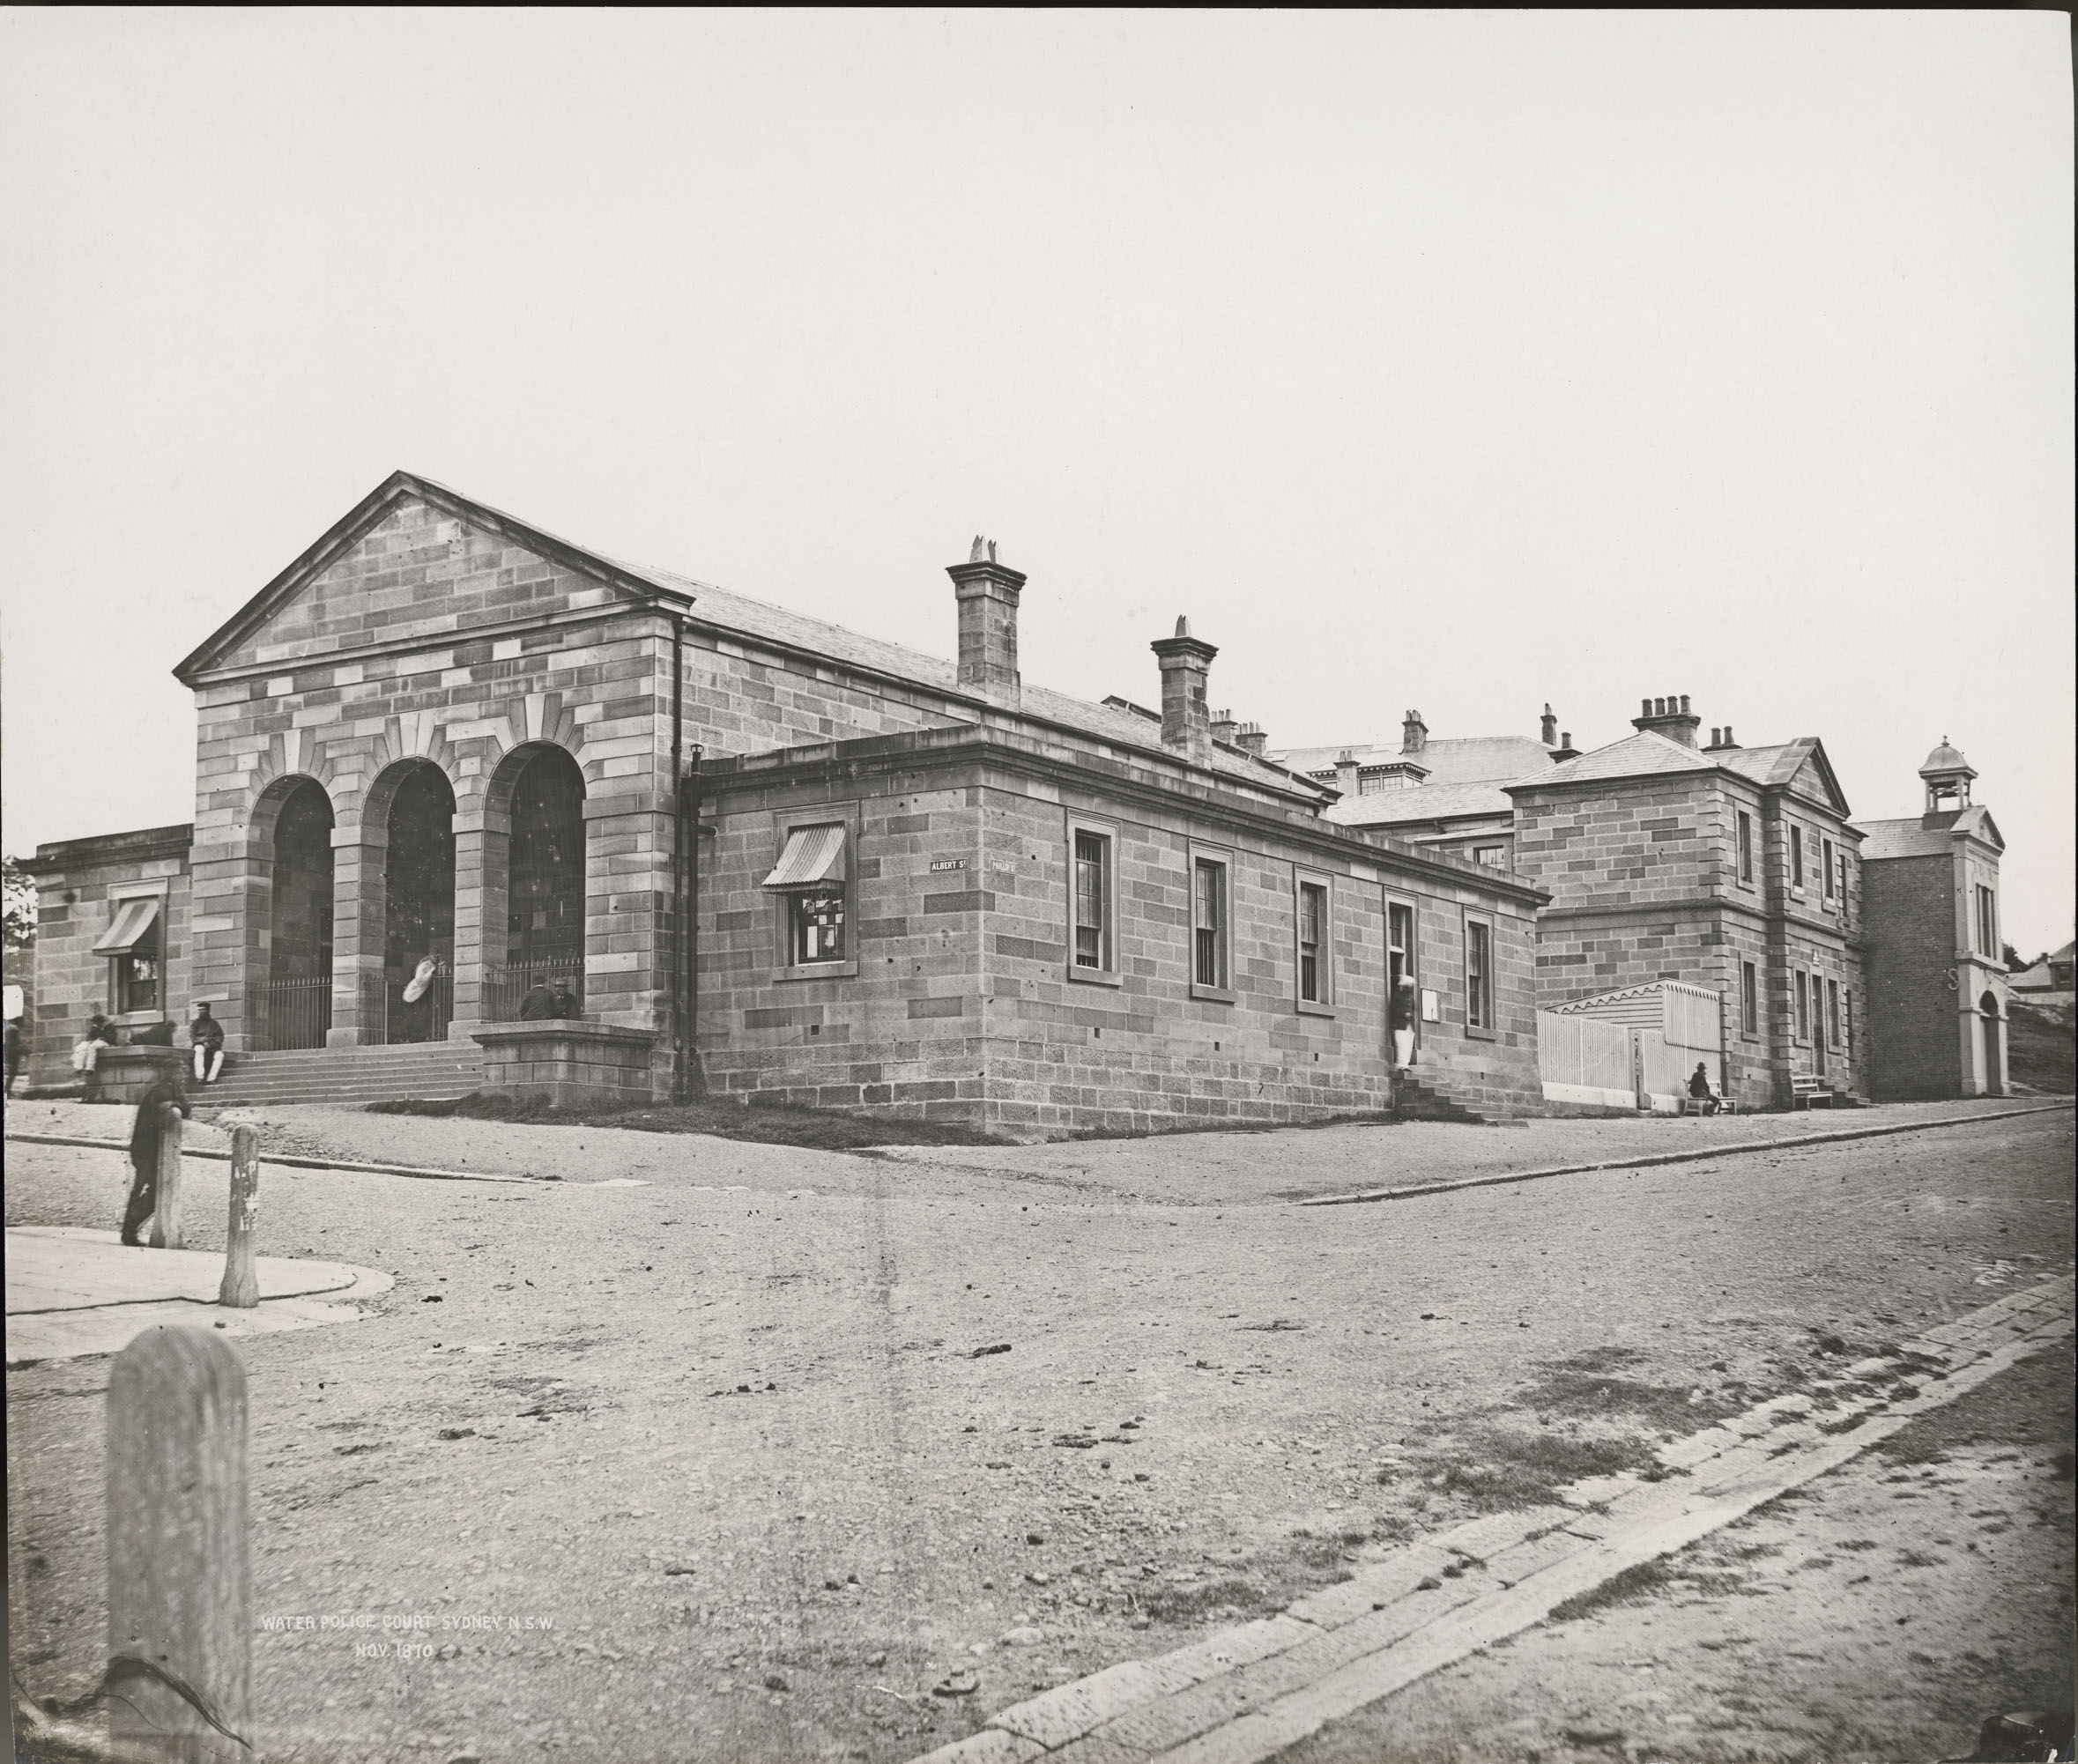 Black and white photograph depicting Phillip Street police station (Justice & Police Museum), corner of Phillip and Albert Streets, Sydney.